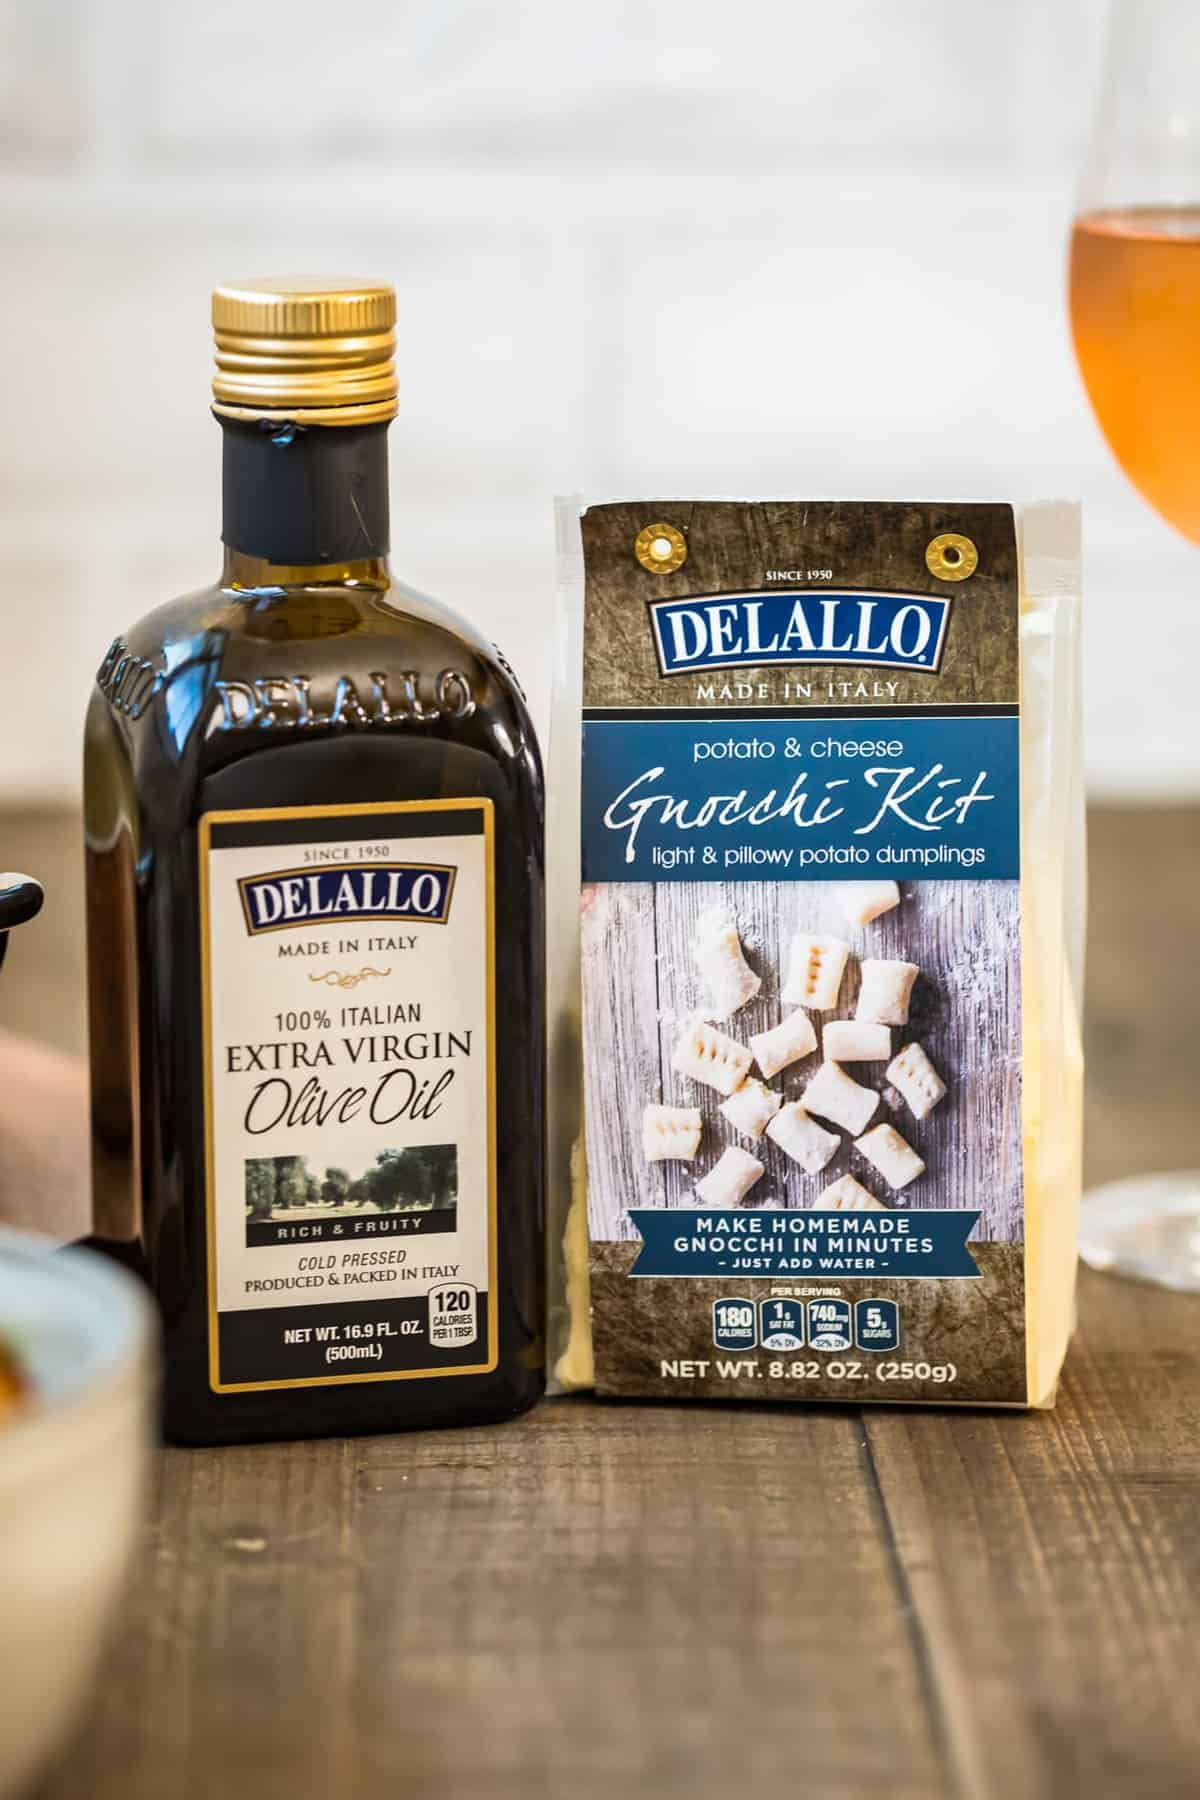 Delallo extra virgin olive oil bottle and Delallo Gnocchi Kit on wooden table